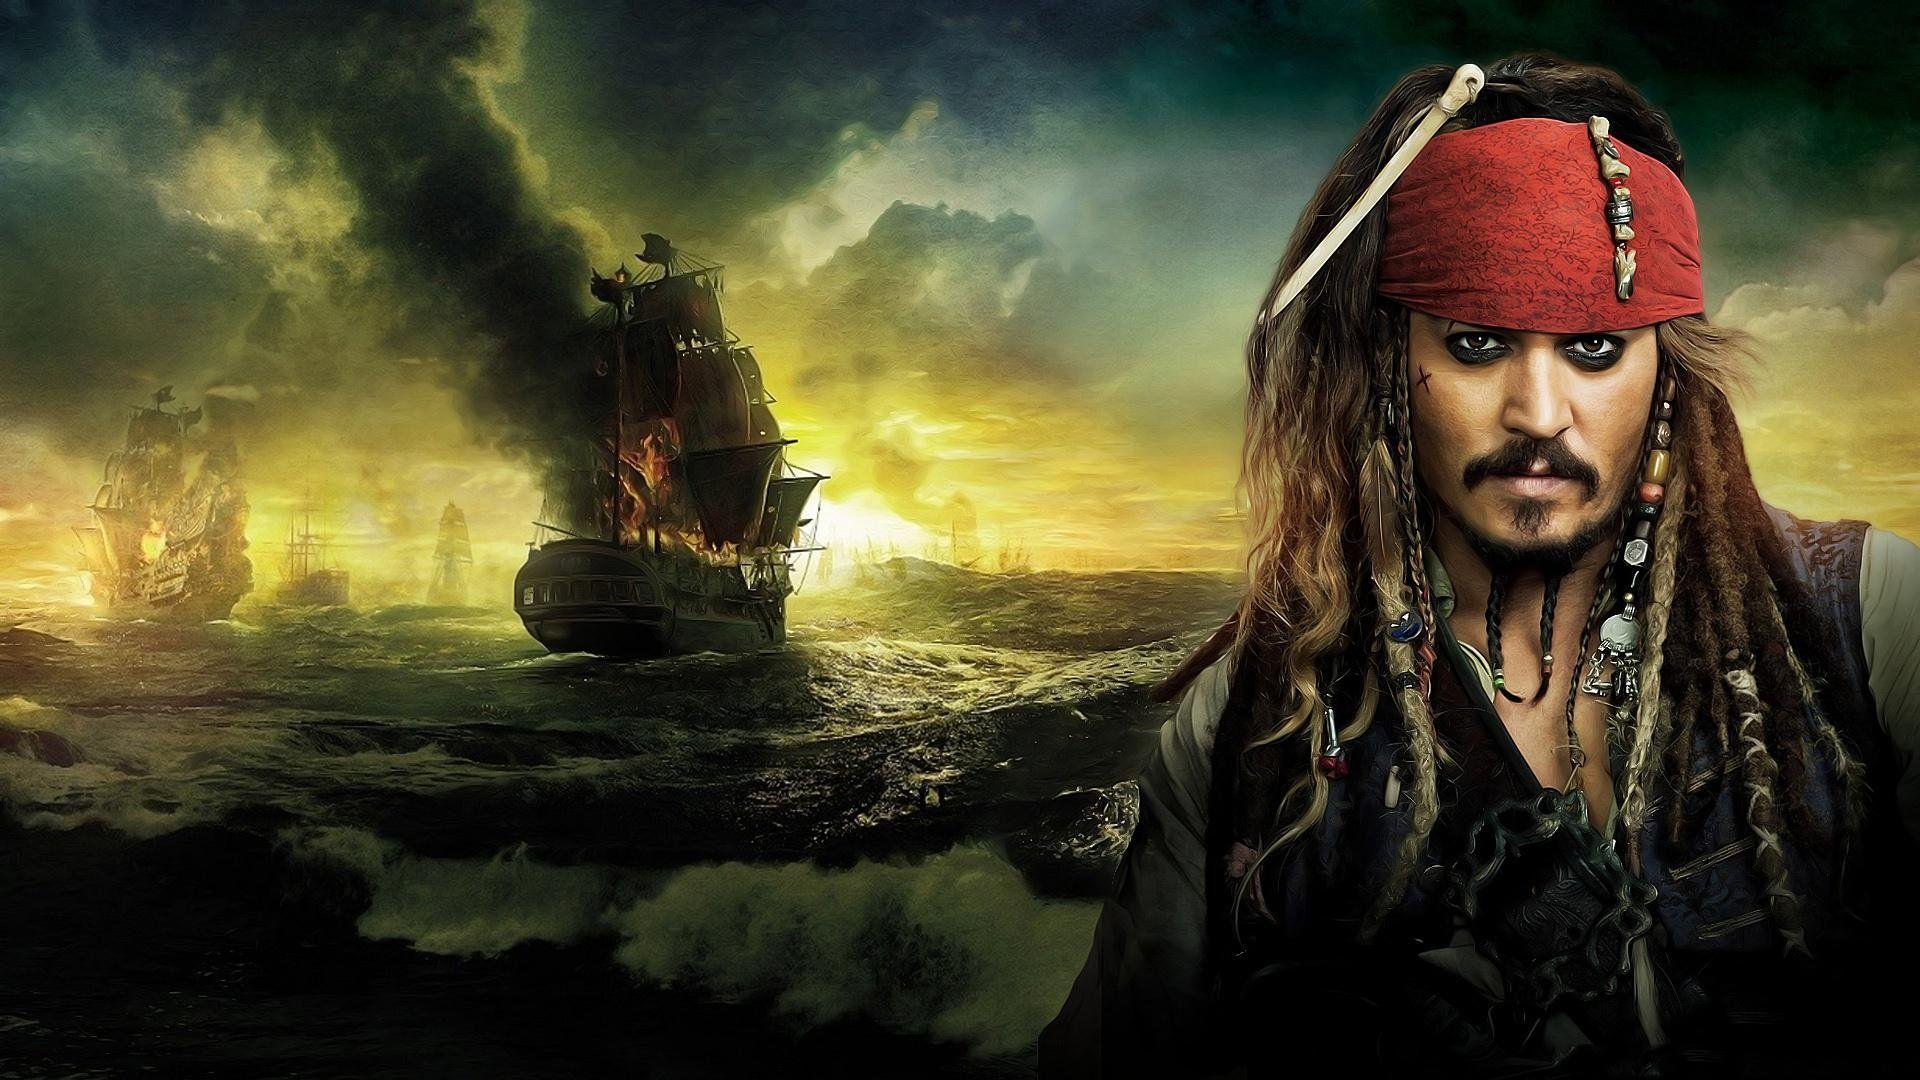 Captain Jack Sparrow - Pirates Of The Caribbean Wallp